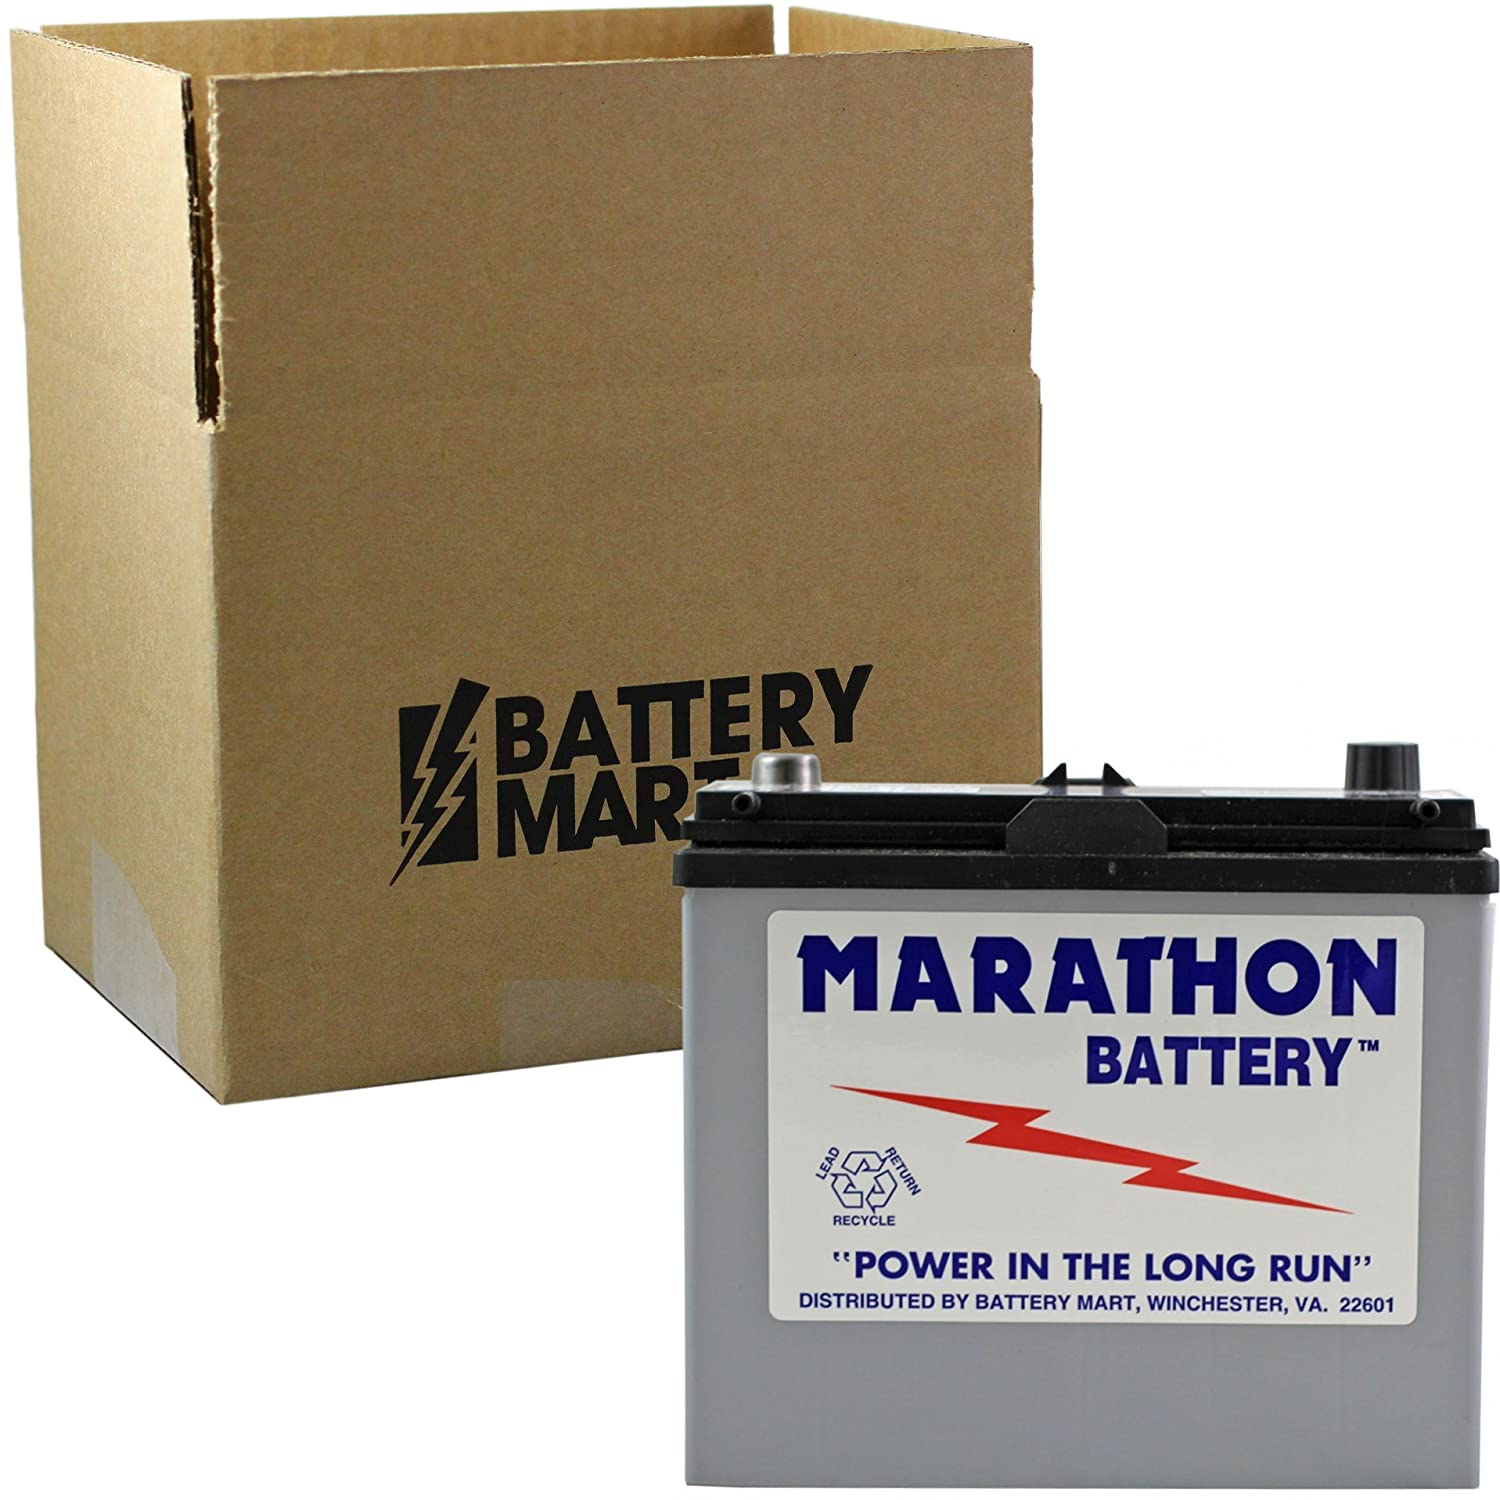 Mazda MIATA MX-5 L4 1.6L 1990-2005 Battery Replaces SLIU1RT BatteryMart.com MAR-8AM-U1R